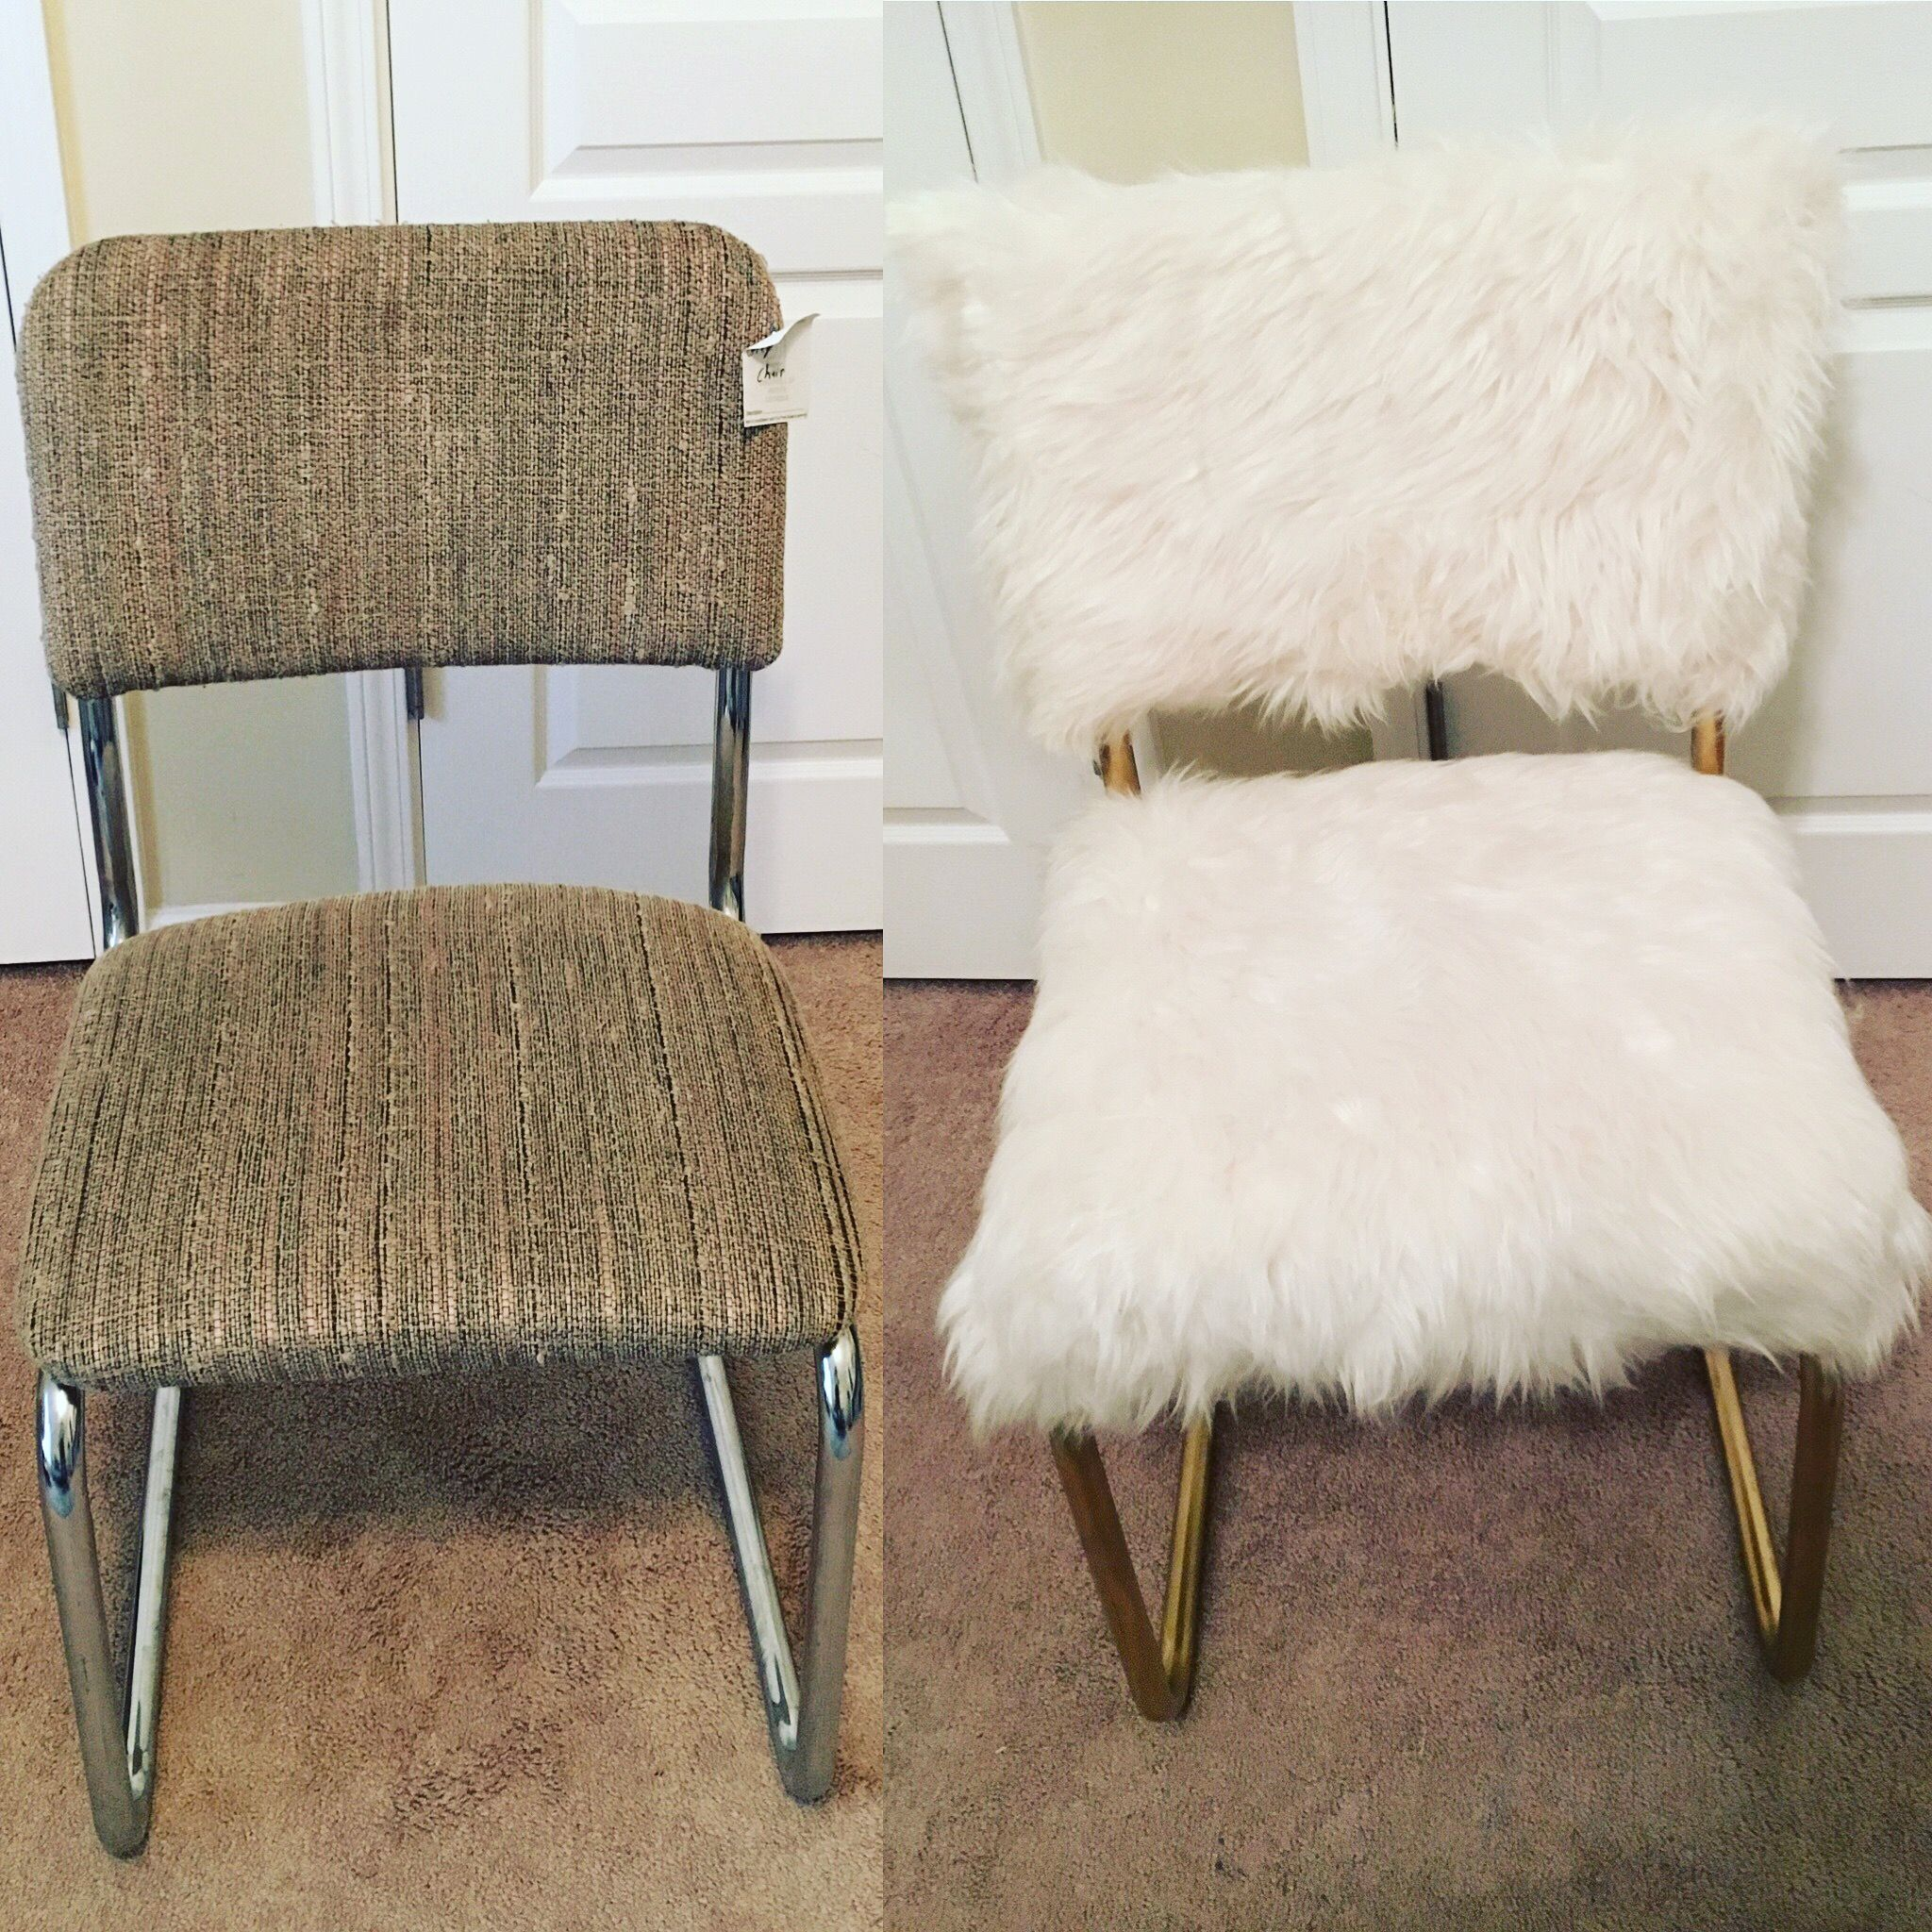 Shabby 4 Goodwill Chair Transformed Into A Chic White And Gold Faux Fur Chair Easy And Affo Diy Furniture Chair Bedroom Furniture Makeover Furniture Makeover